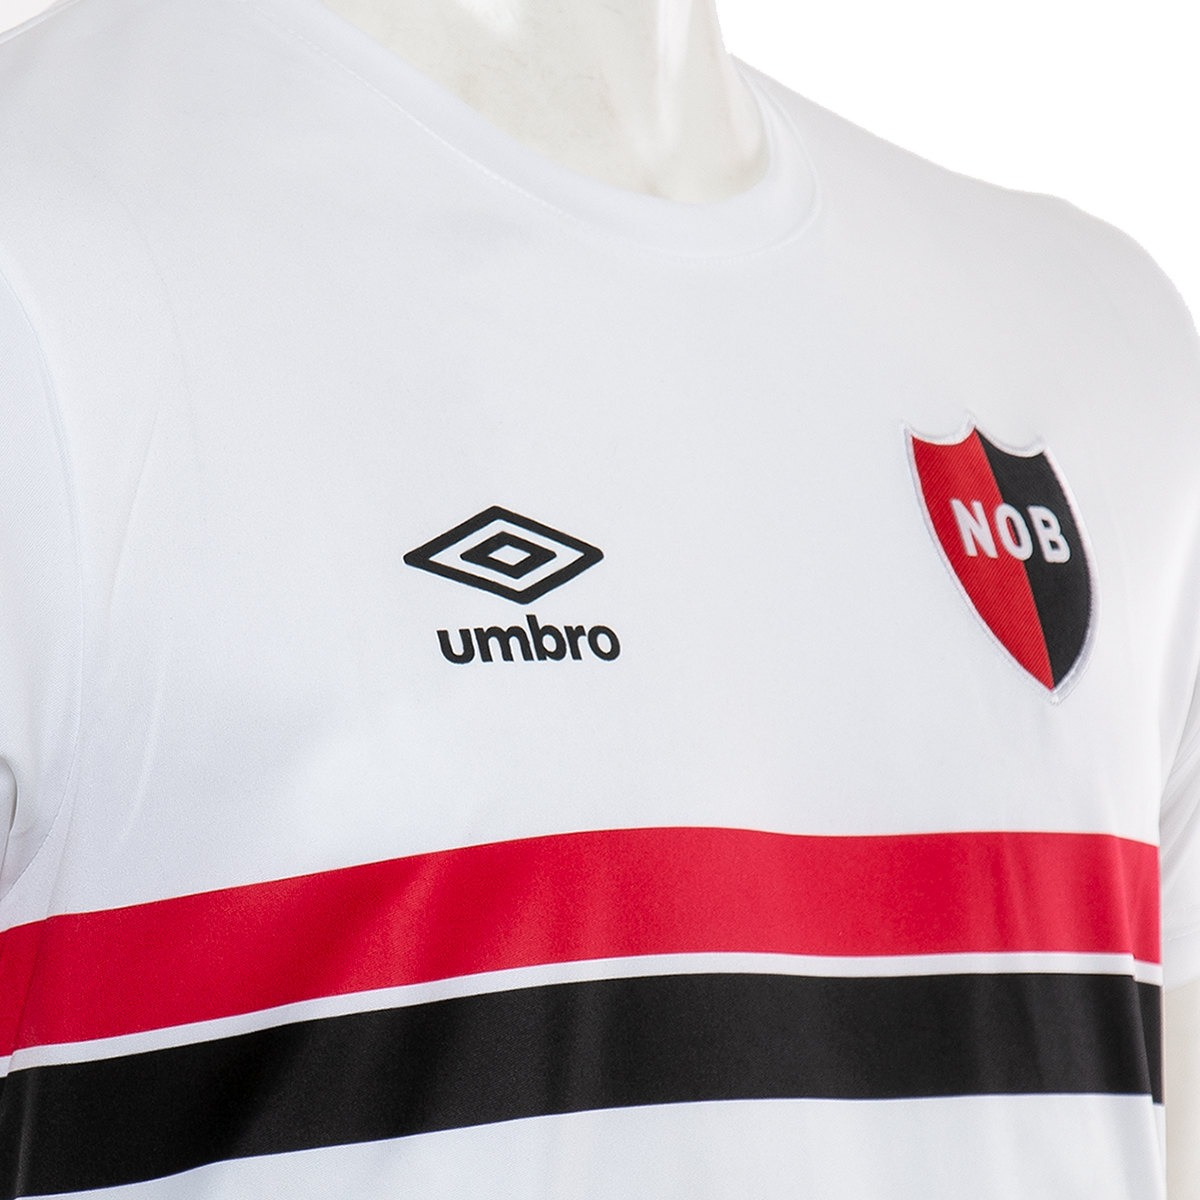 6b852c2a7ac64 remera newells old boys salida 19 umbro. Cargando zoom.